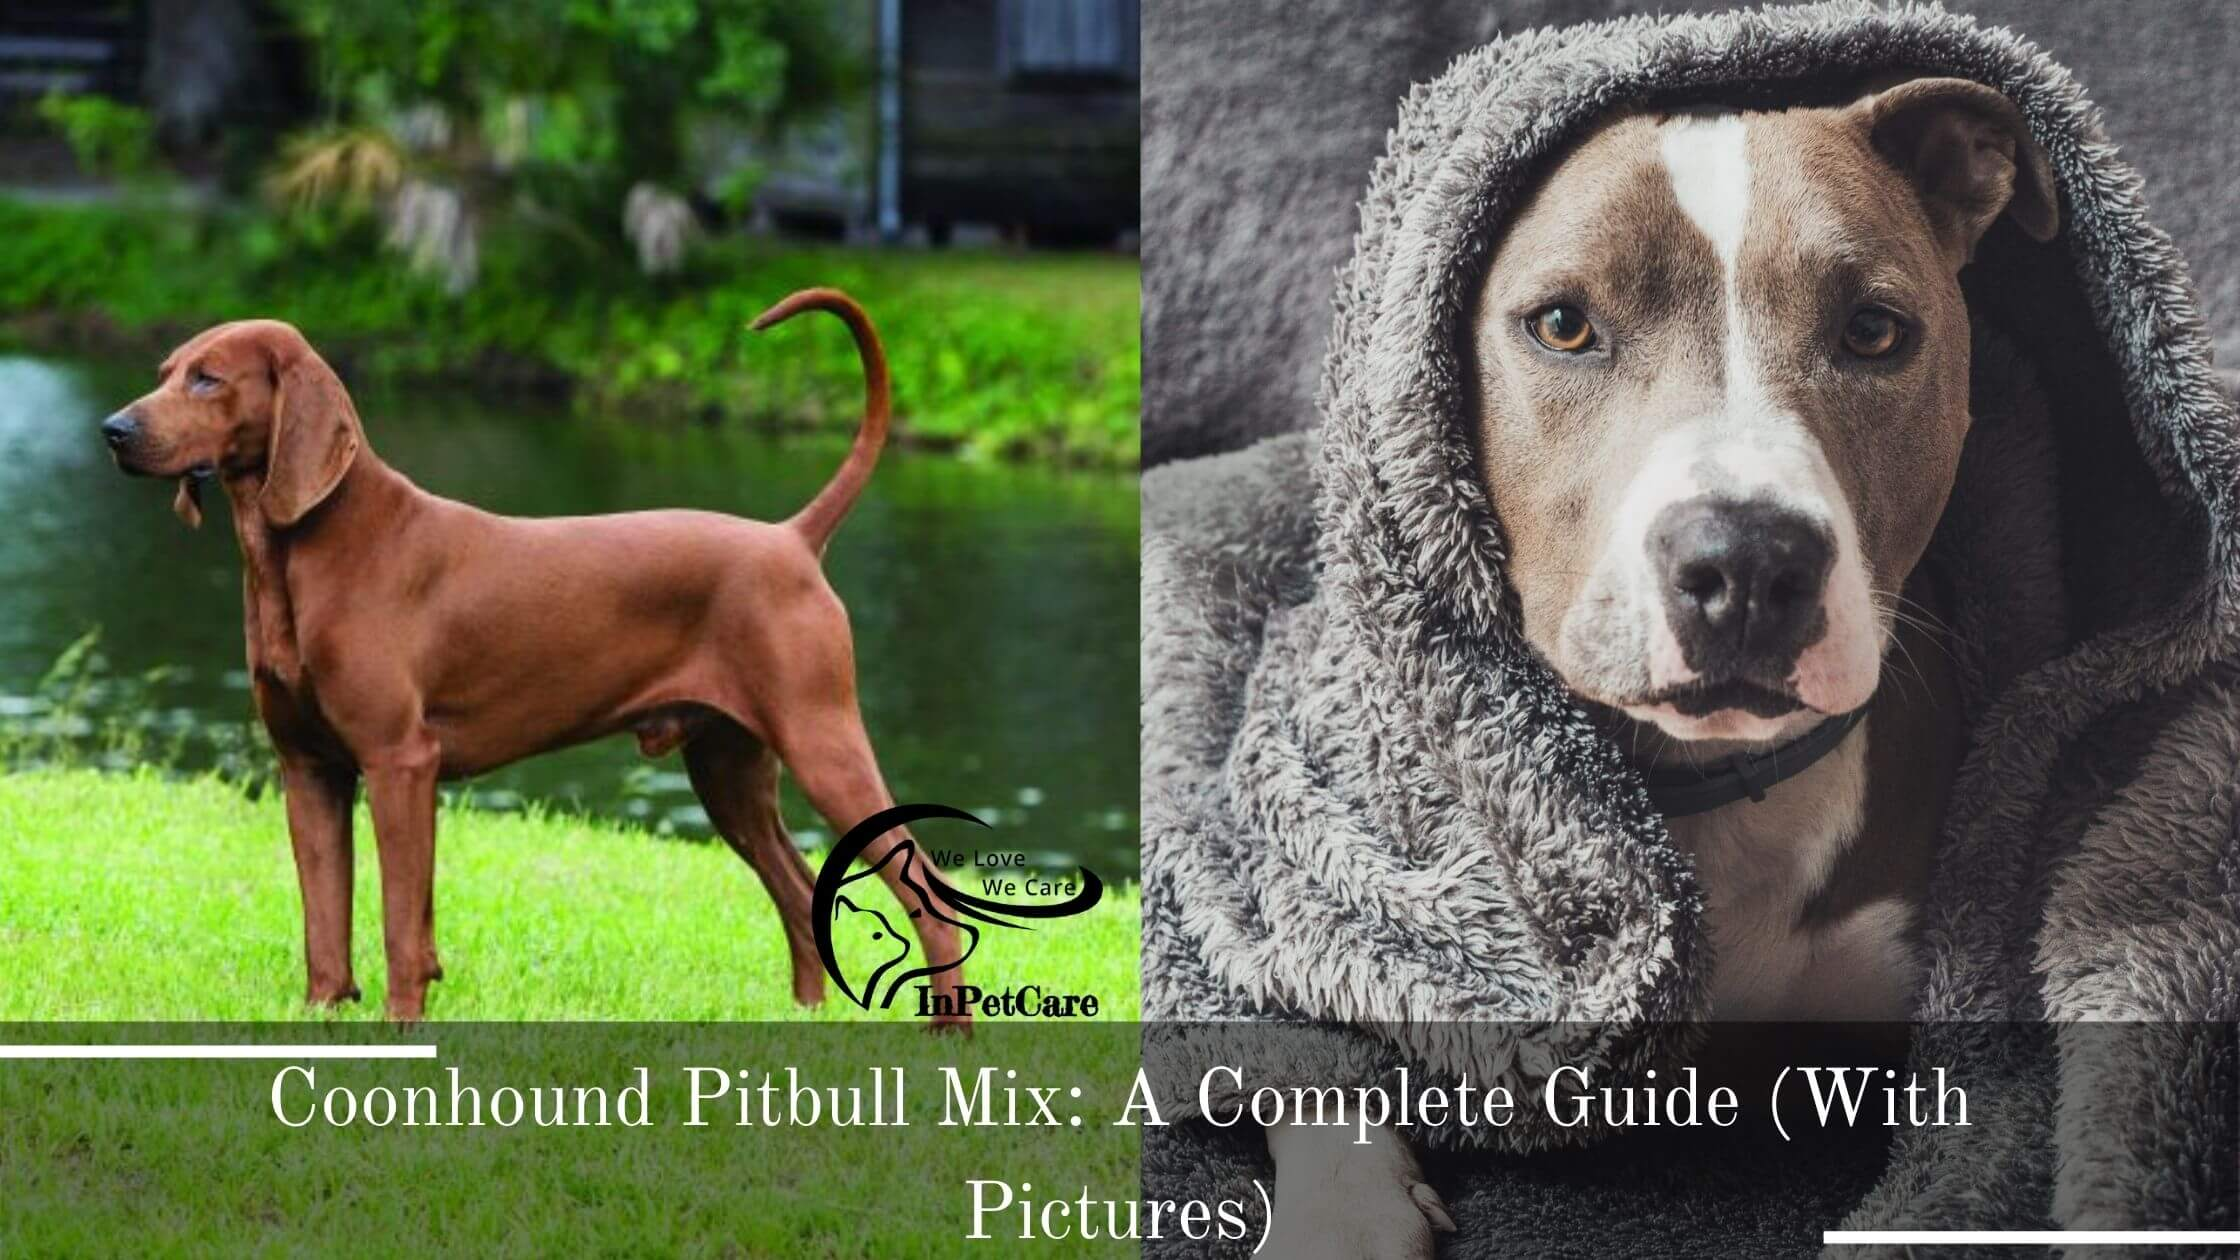 Coonhound Pitbull Mix: A Complete Guide (With Pictures)